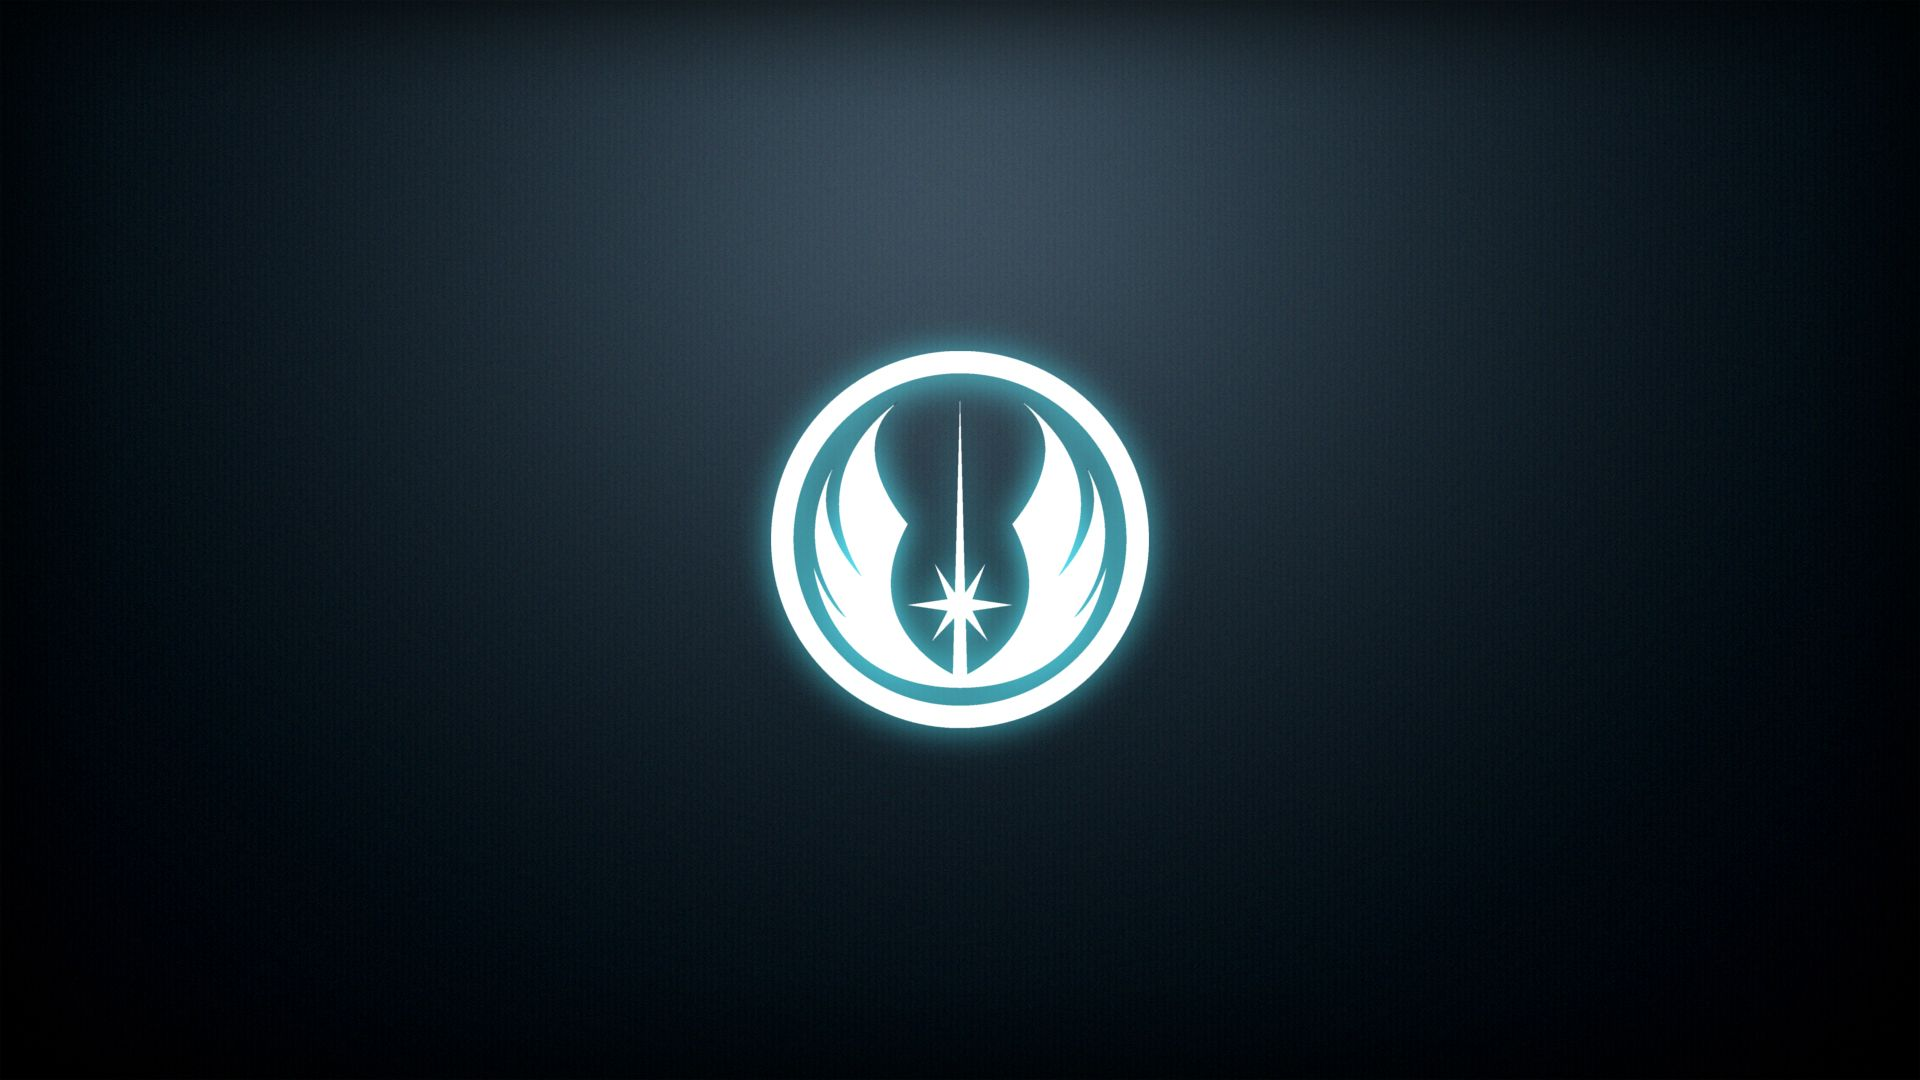 Star Wars Wallpaper Jedi image gallery 1920x1080